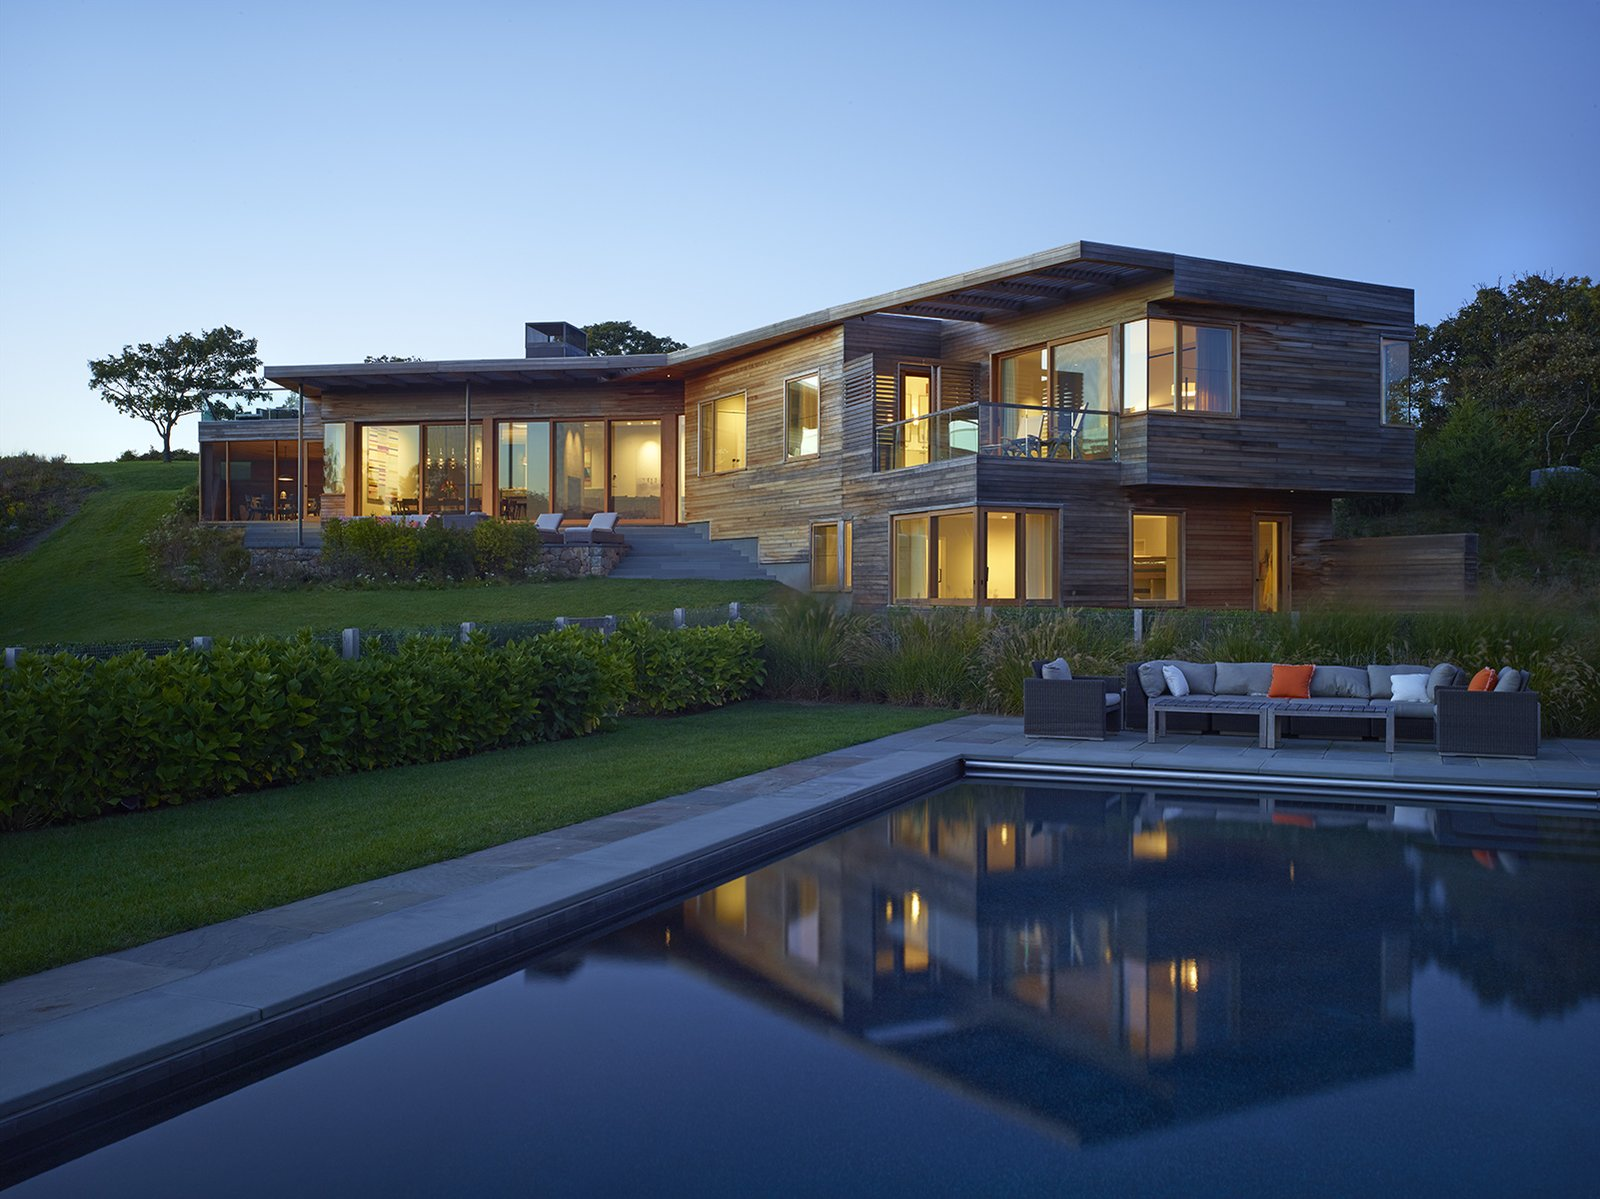 Vineyard Farm House by Charles Rose Architects